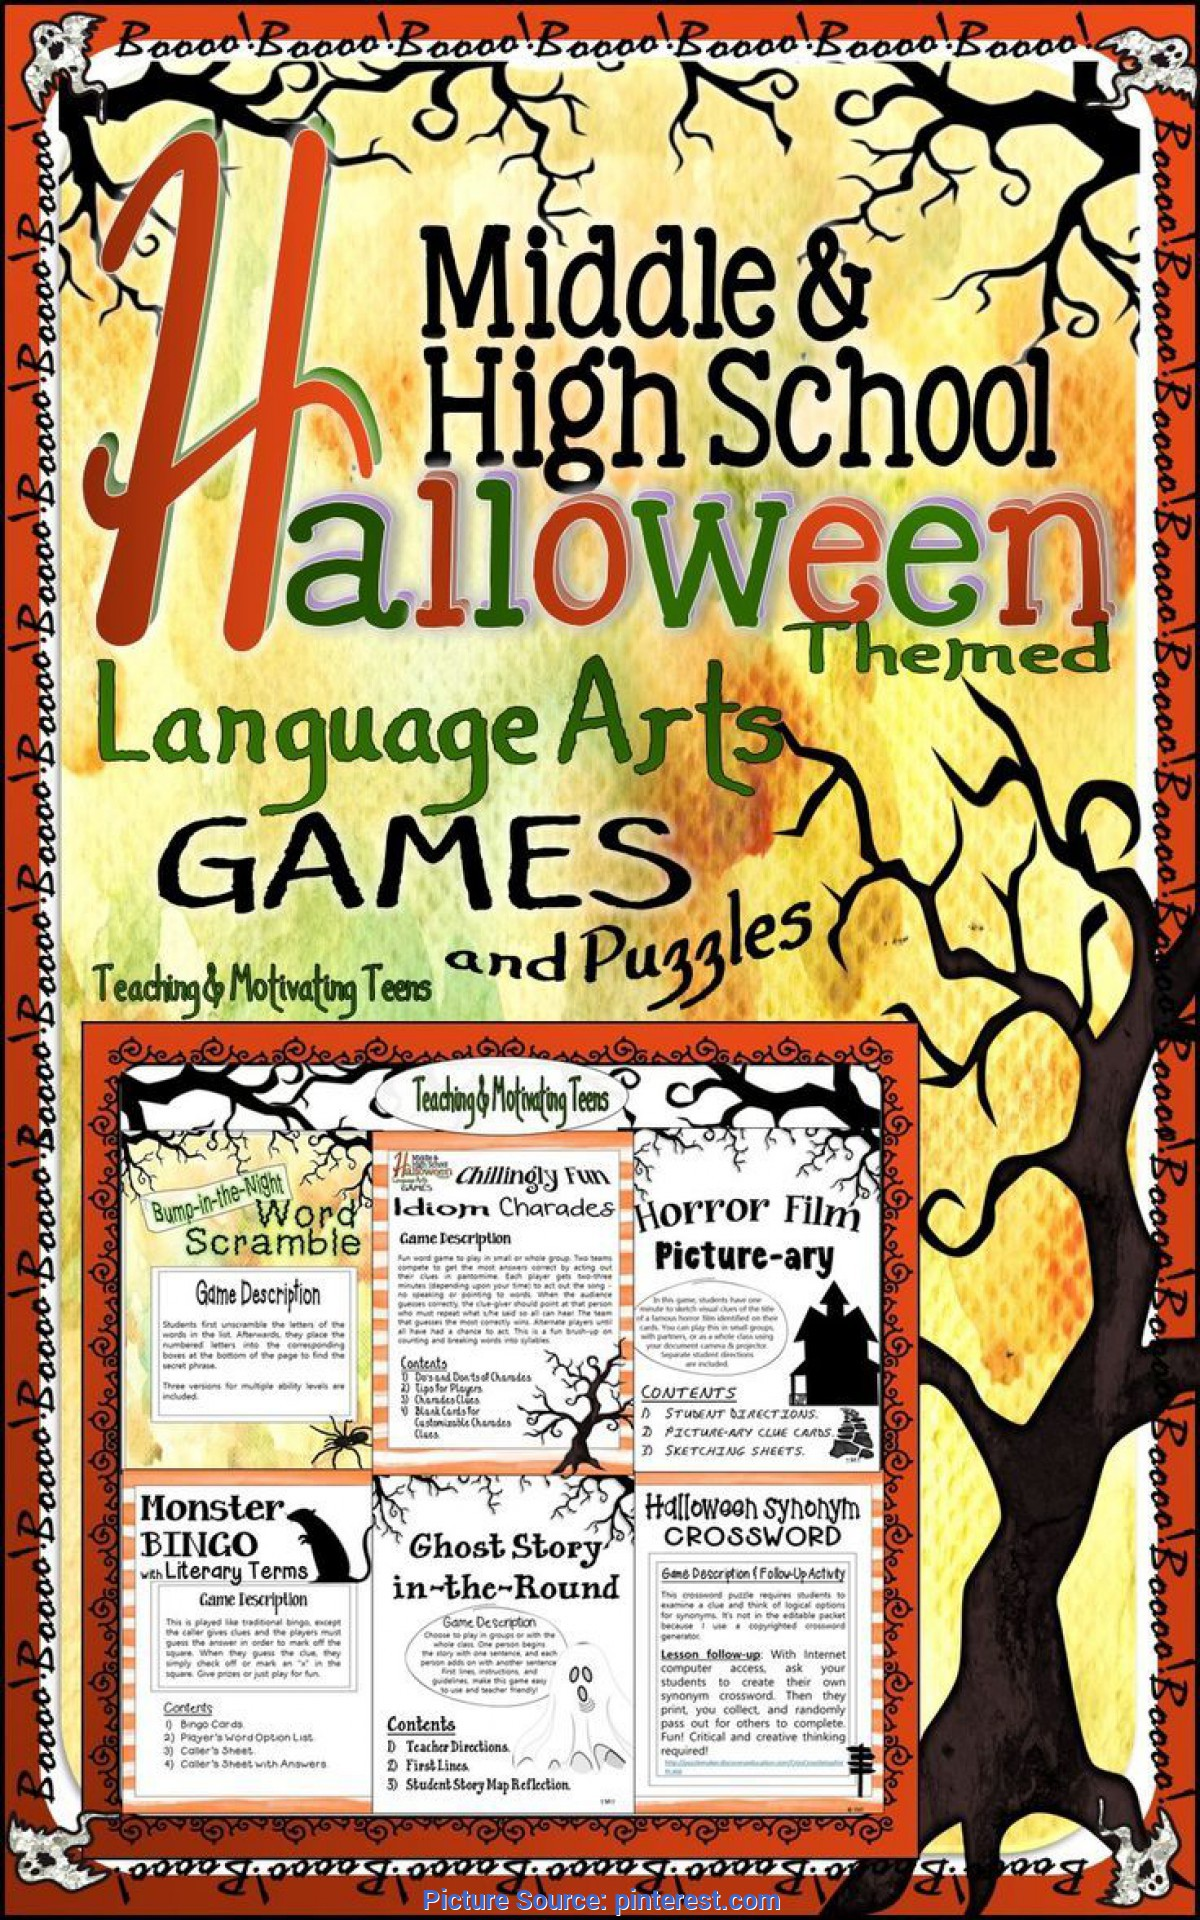 Regular High School Language Arts Halloween Games & Puzzles - Fun Middle & Secondary Ccss Englis